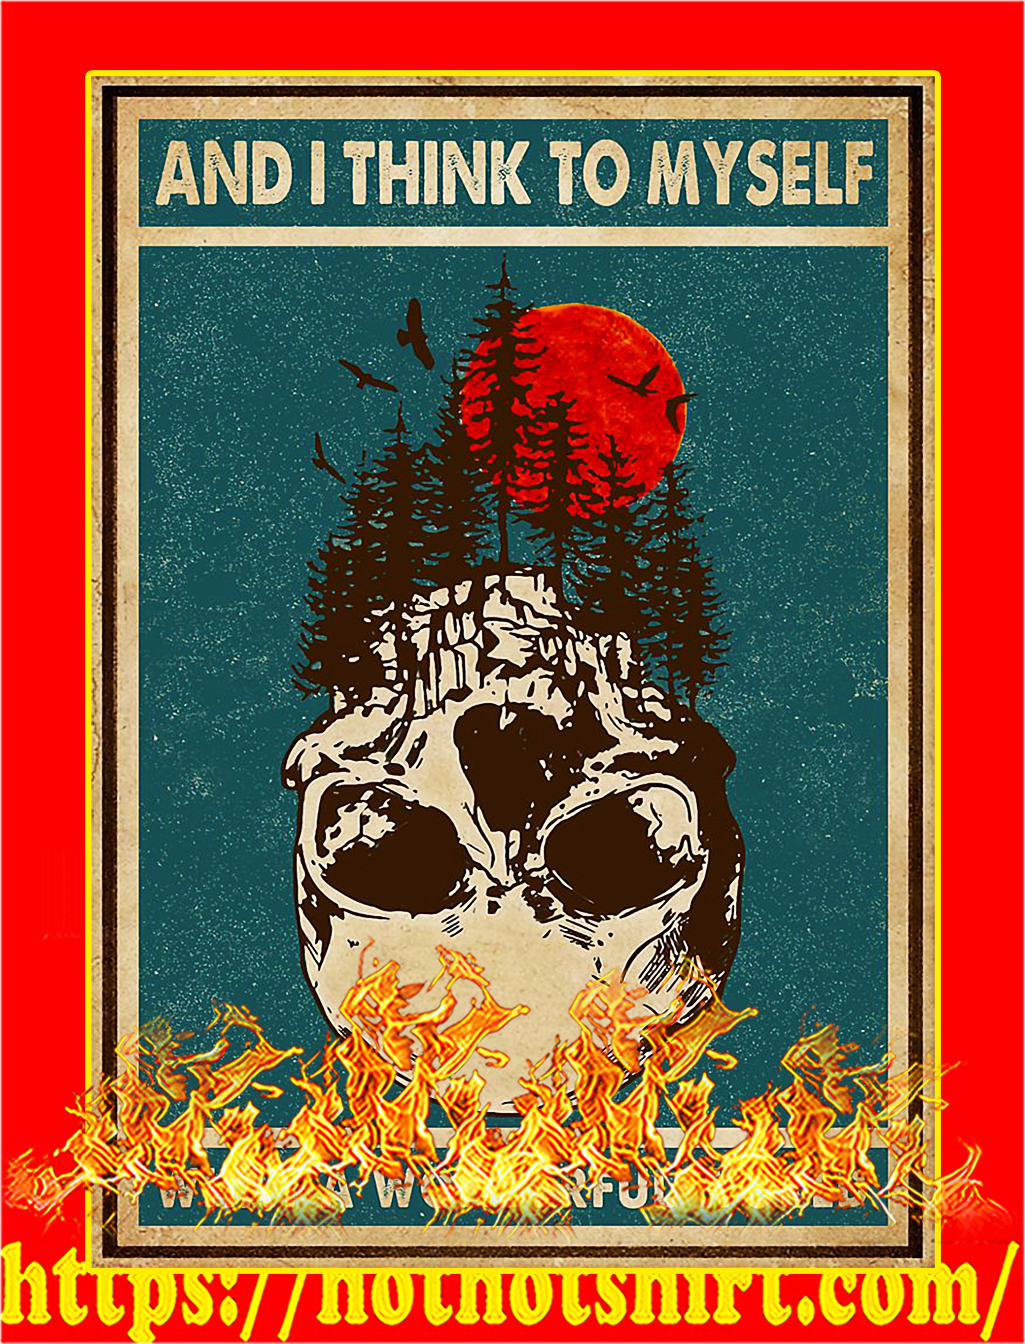 Skull and I think to myself what a wonderful world poster - A4